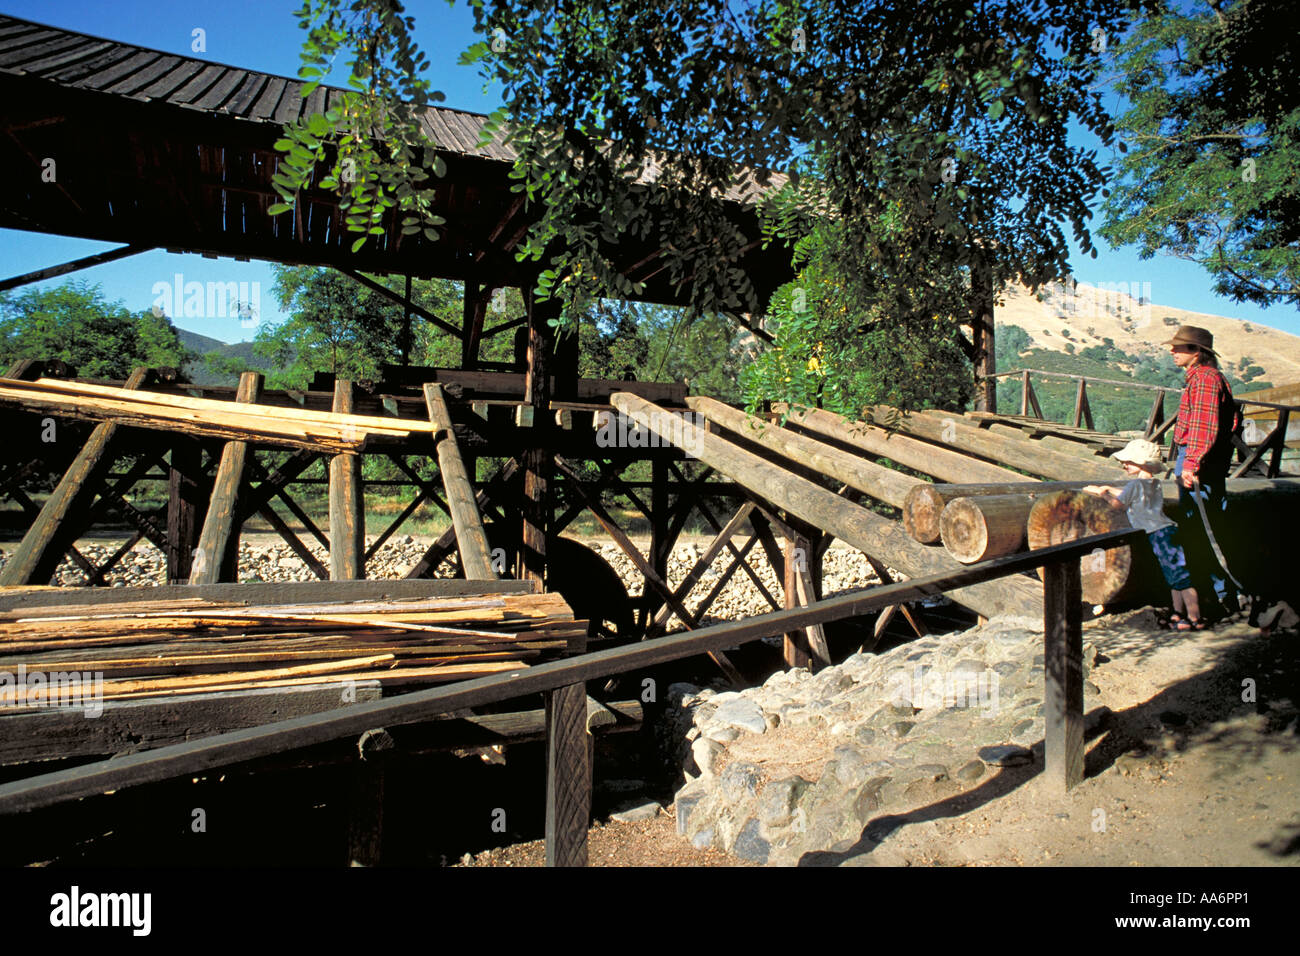 Elk240 1685 California Motherlode Coloma gold discovery site Sutter s sawmill replica - Stock Image